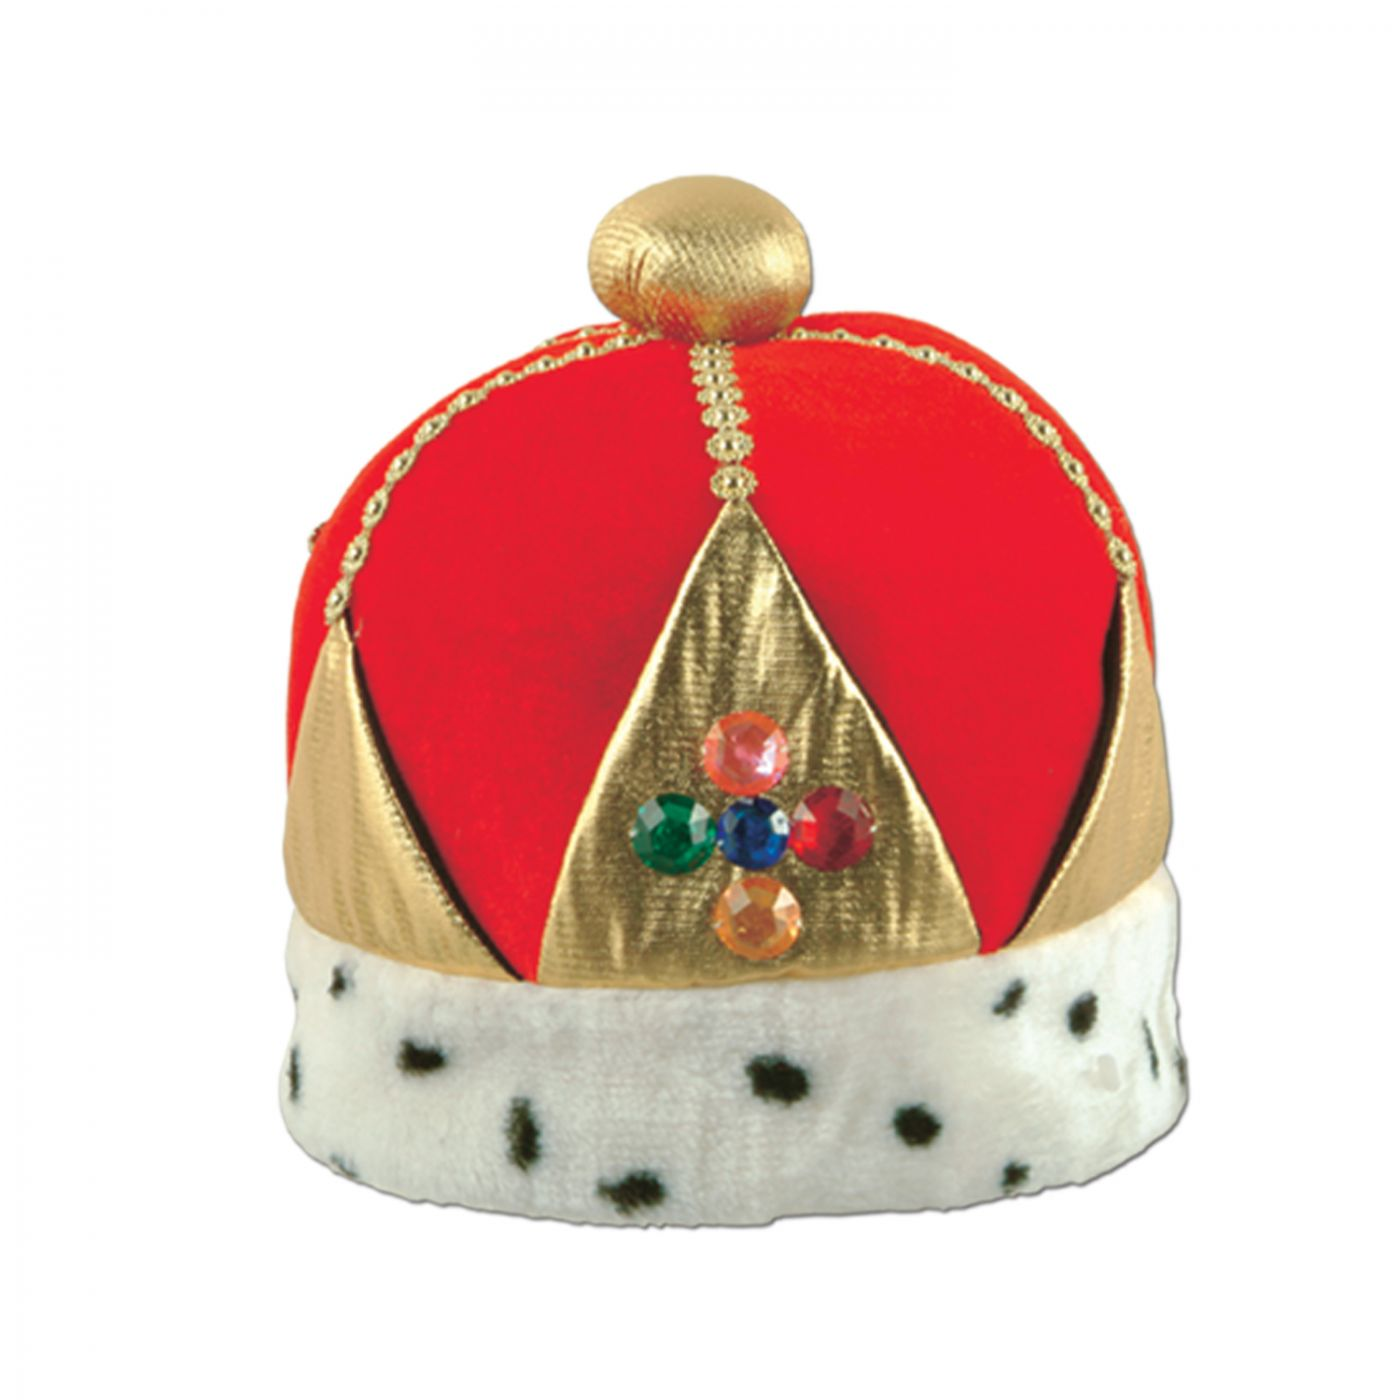 Plush Imperial Queen's Crown image